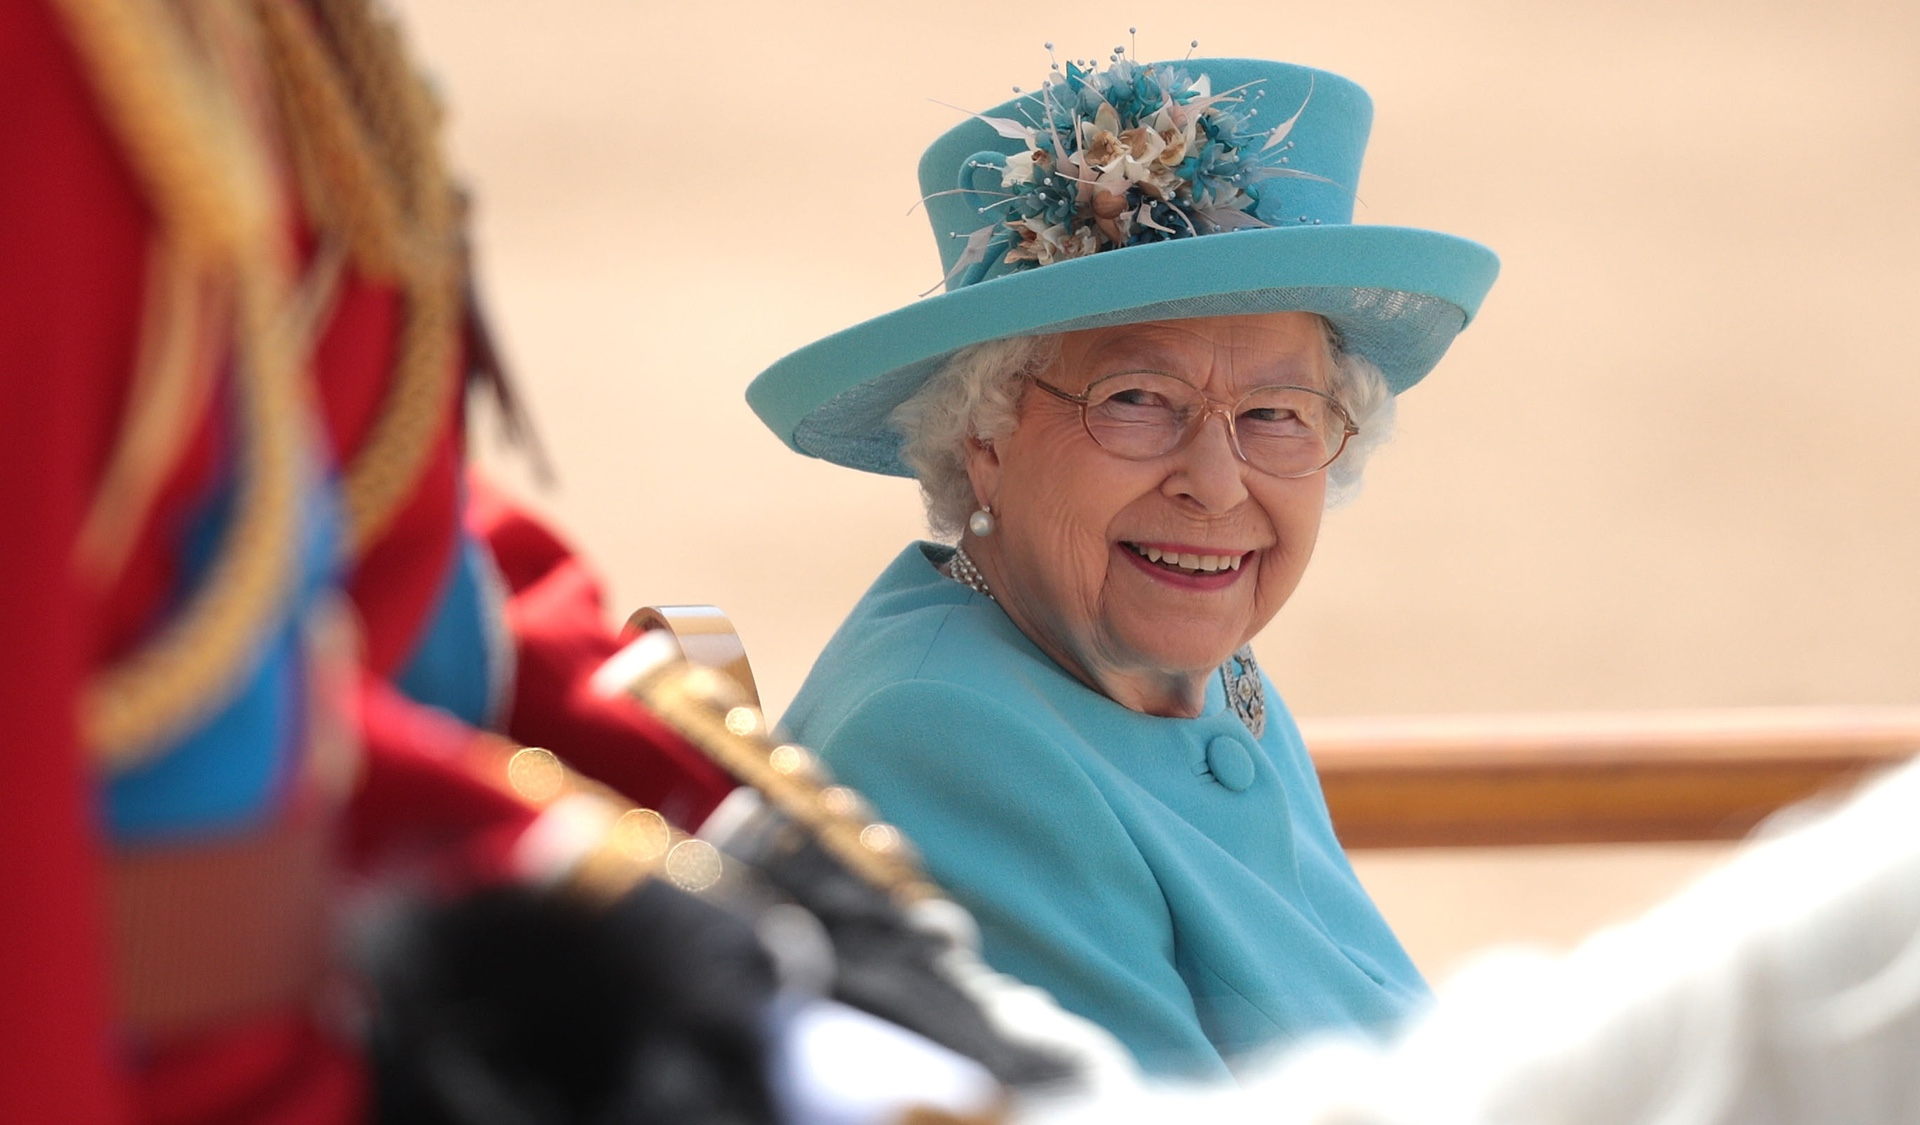 The Queen may have just thrown some shade at Prince Harry and Meghan Markle